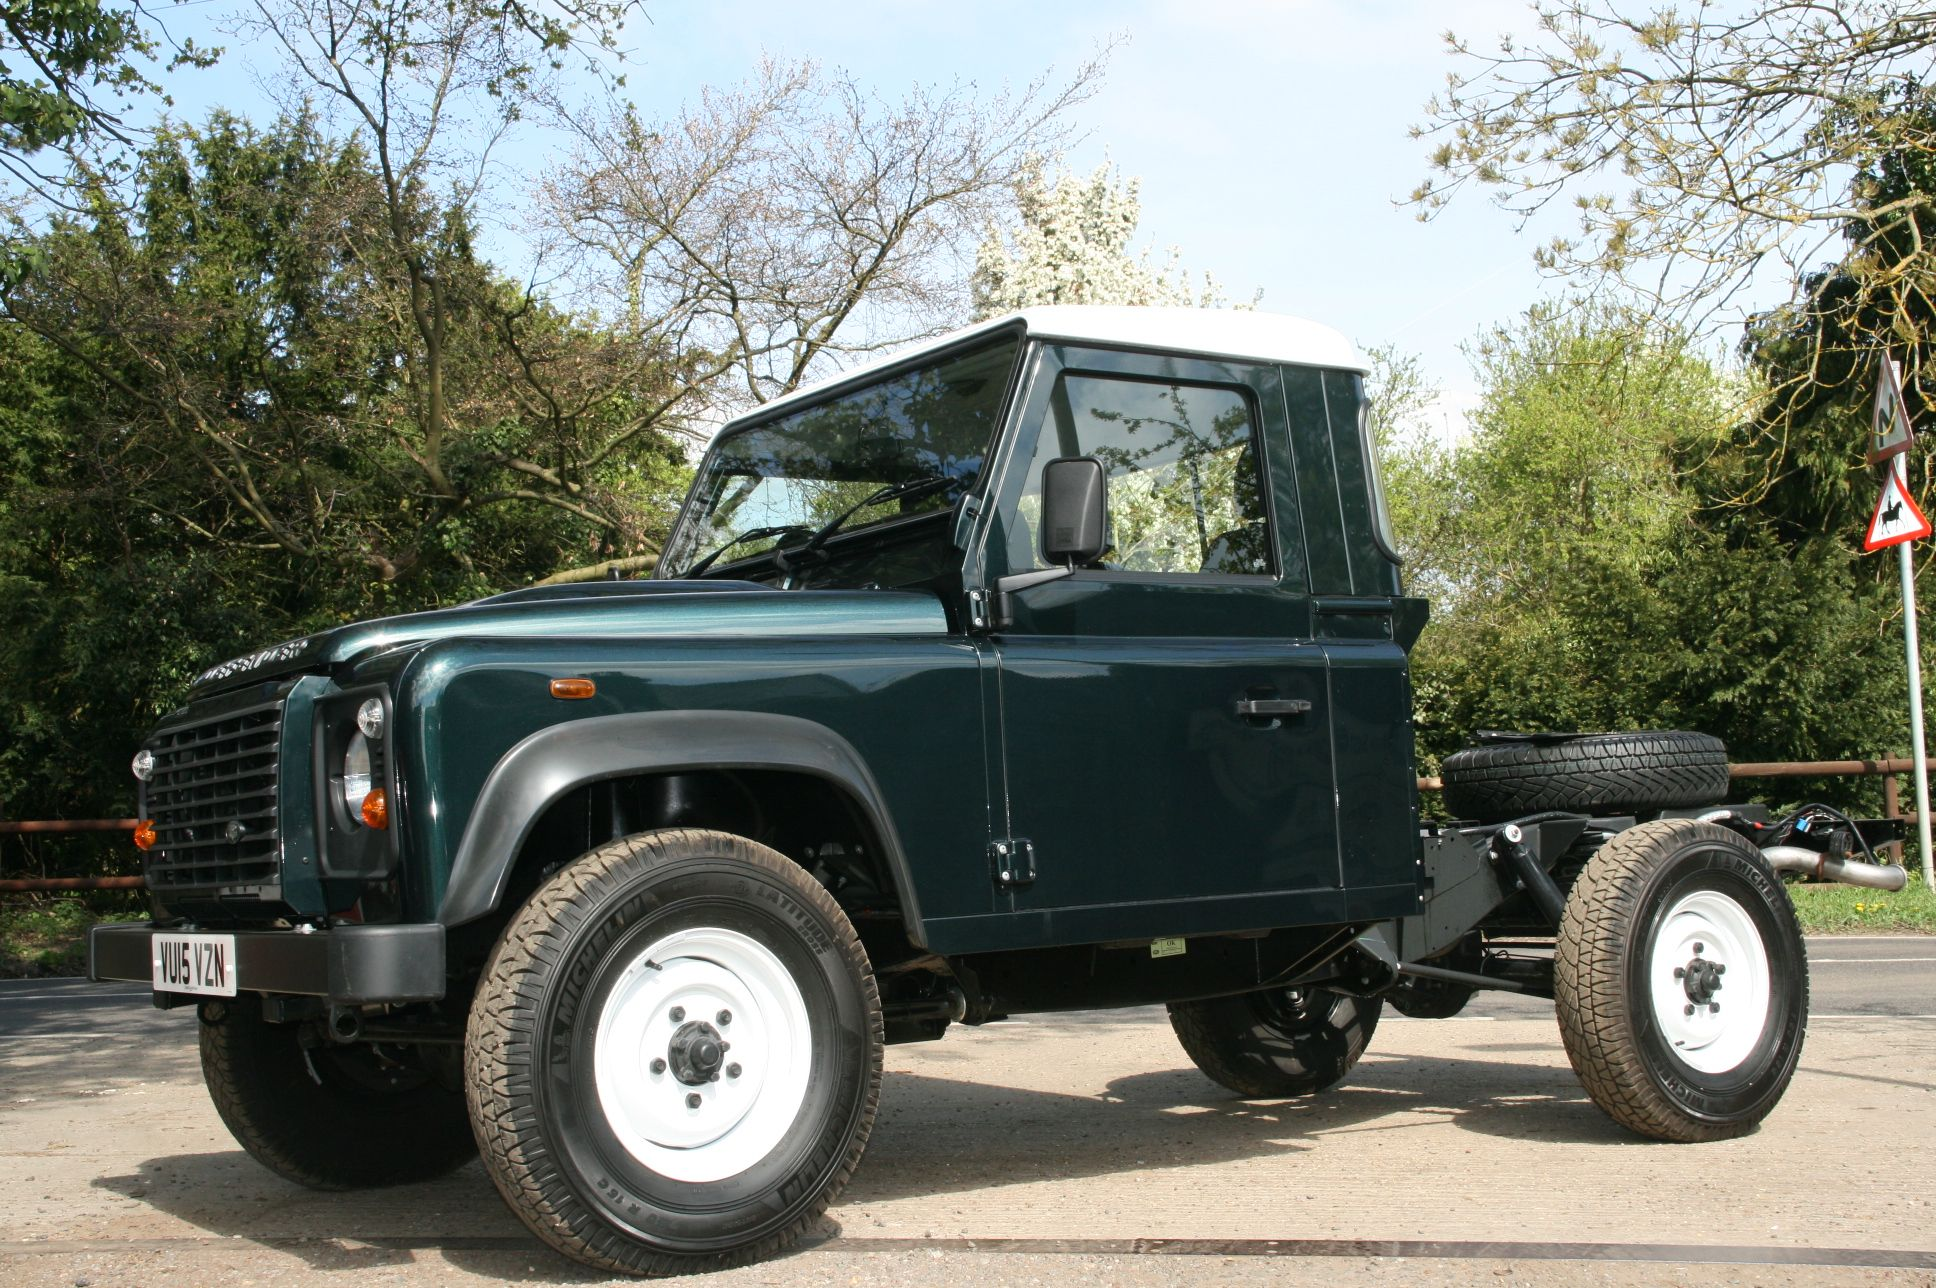 Land Rover Defender 110 chassis cab with cab extension kit